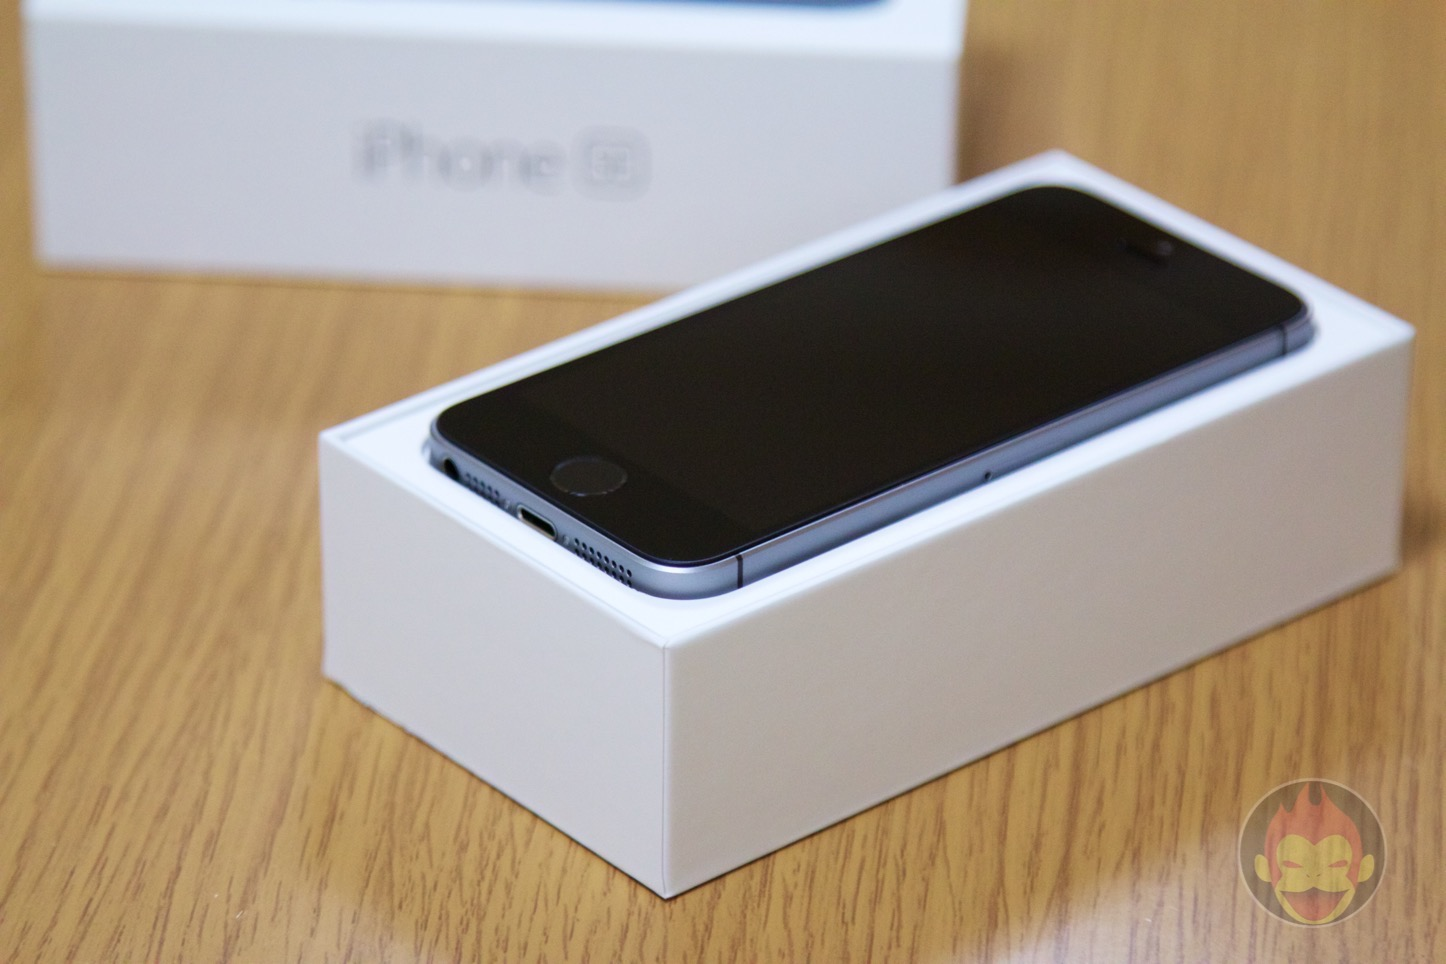 iPhone-SE-Space-Gray-64GB-Photo-Review-02.jpg